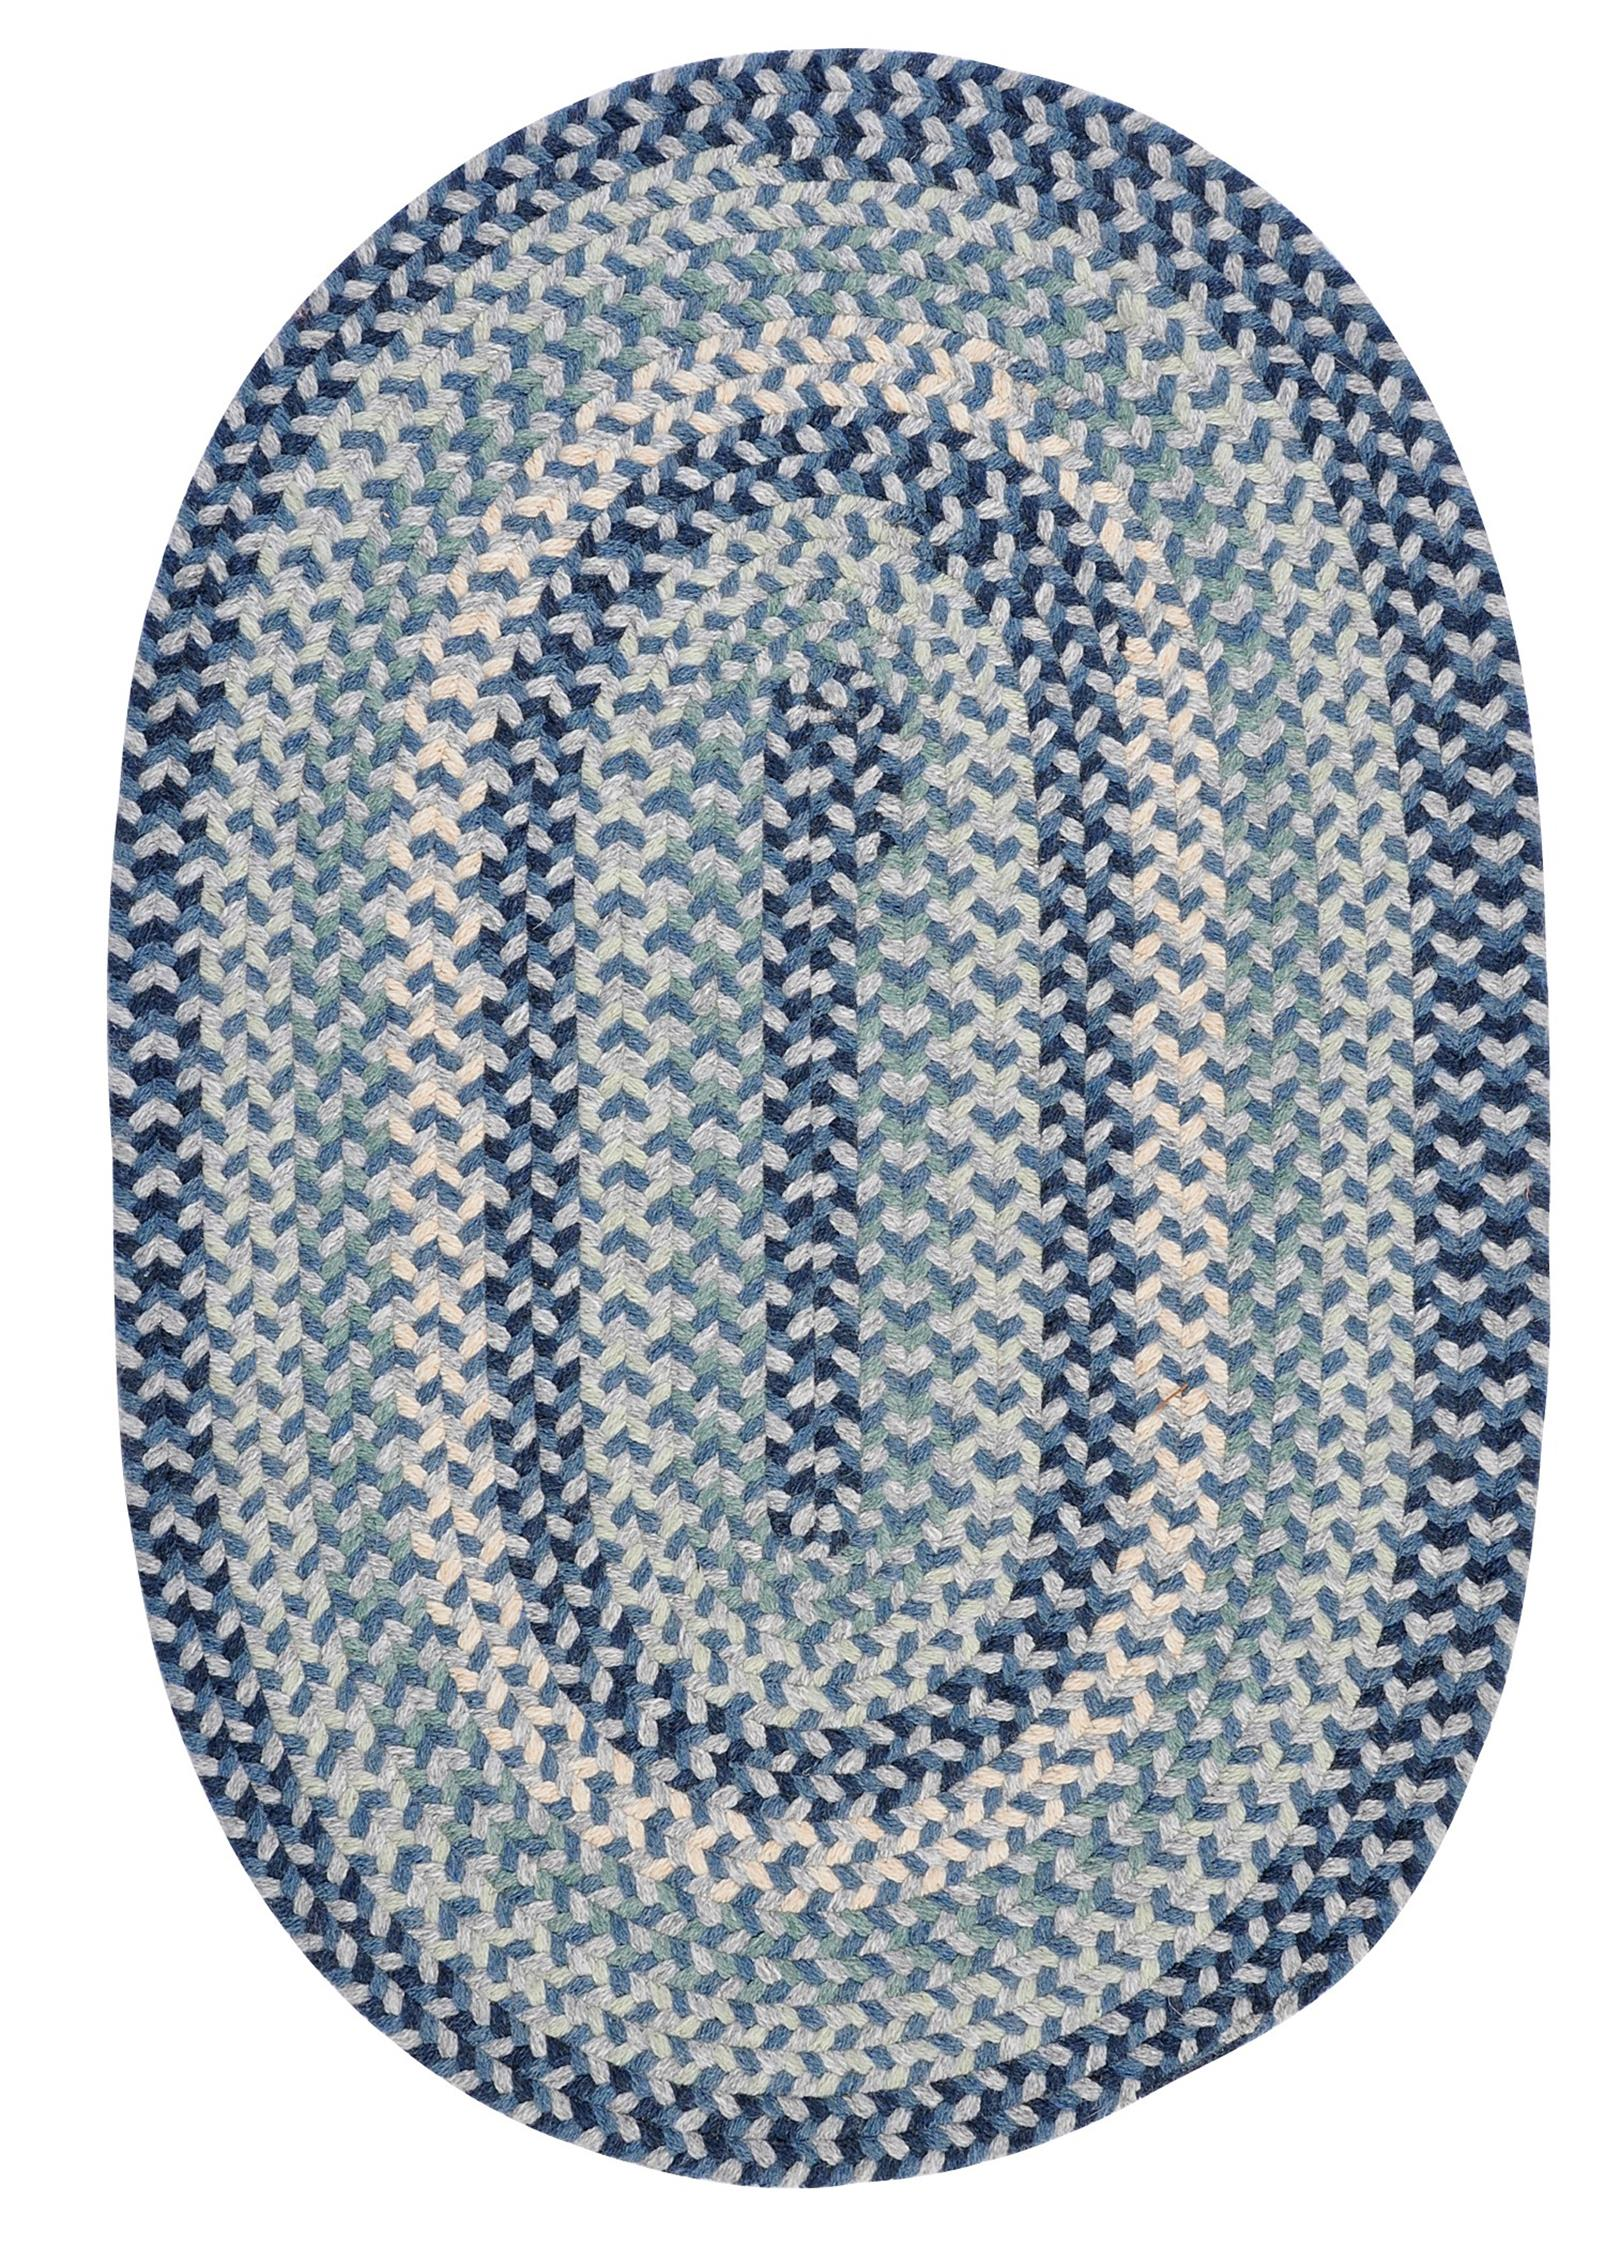 photo area round decoration unique wool foot rugs rug navy x blue of indoor good fishborn ft com